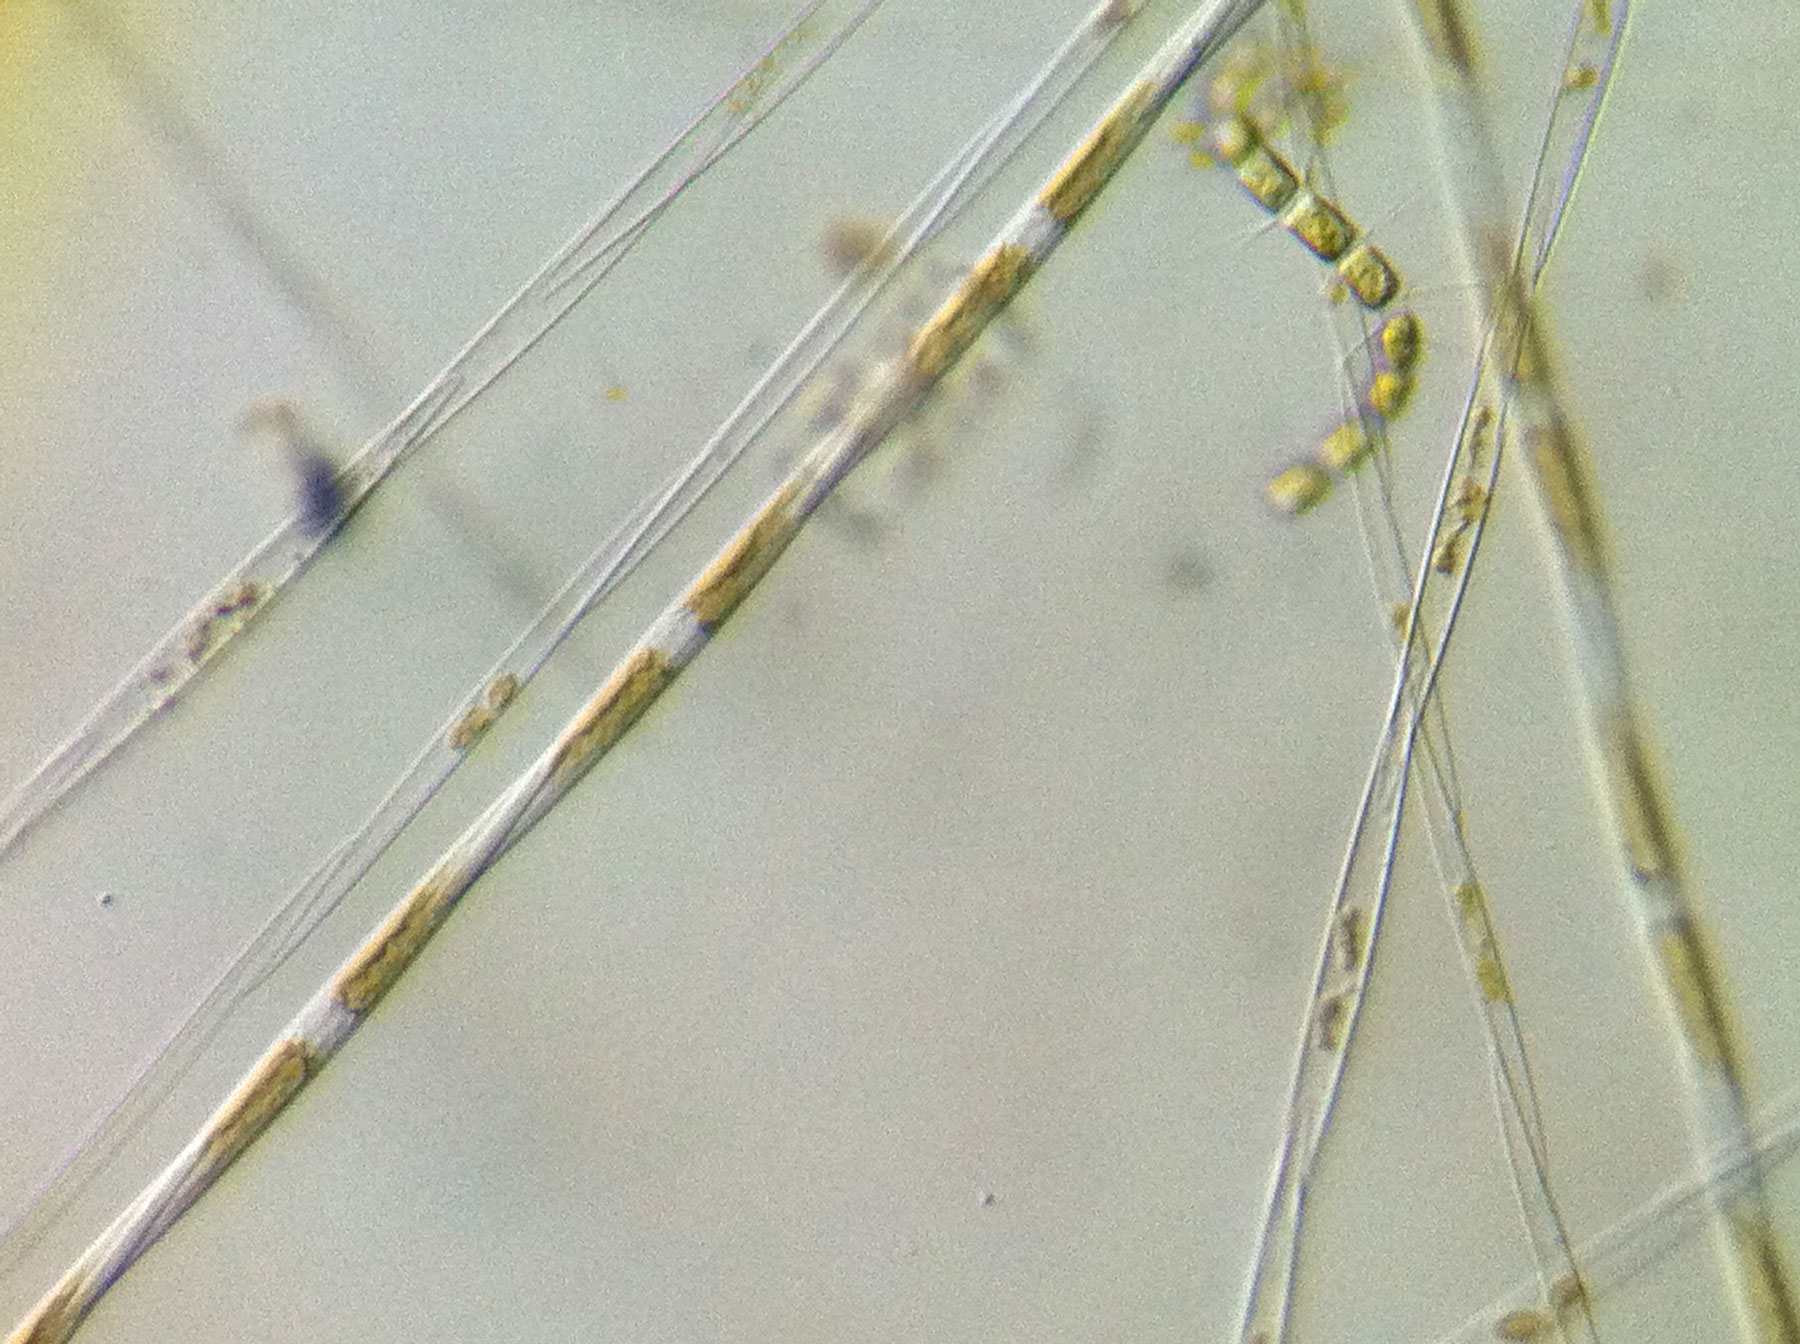 Pseudonitzschia toxic algae bloom